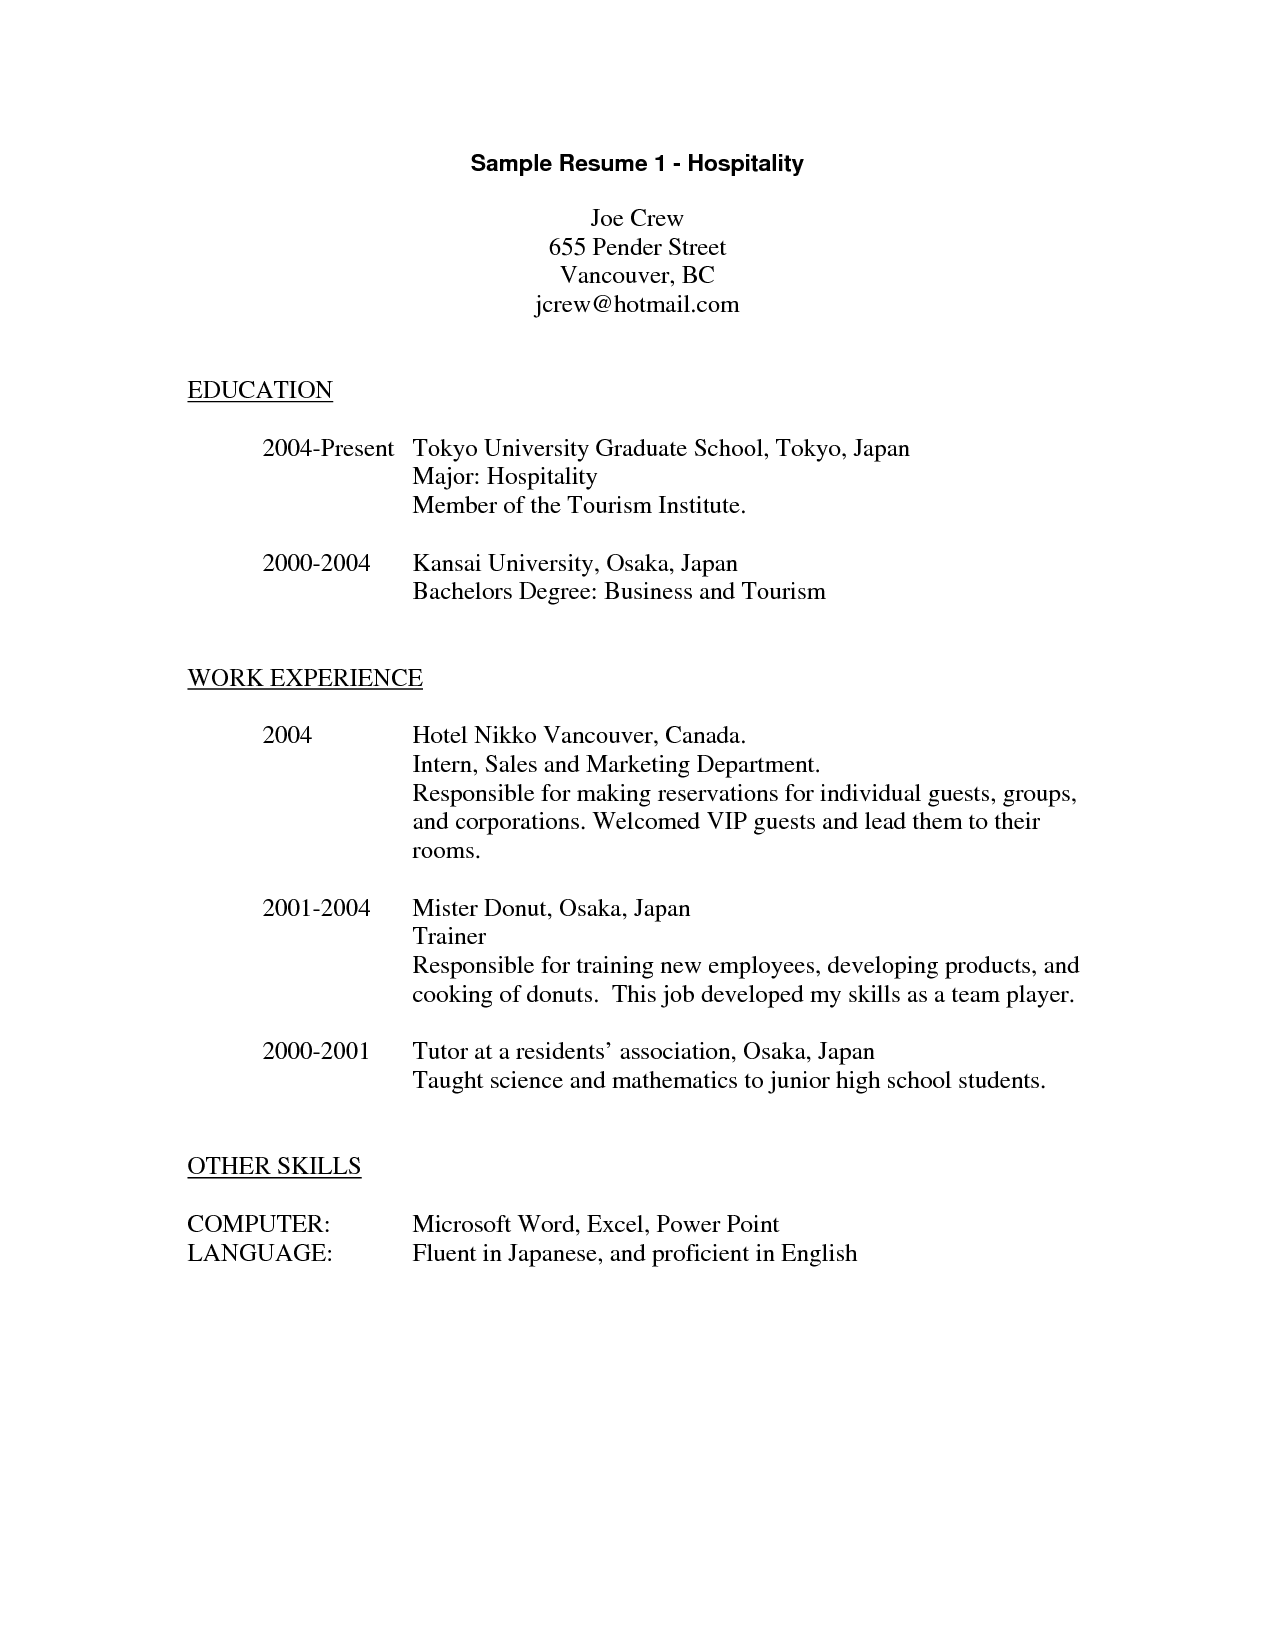 Resume Resume Template Hospitality Industry sample resume for hospitality industry jobs sample